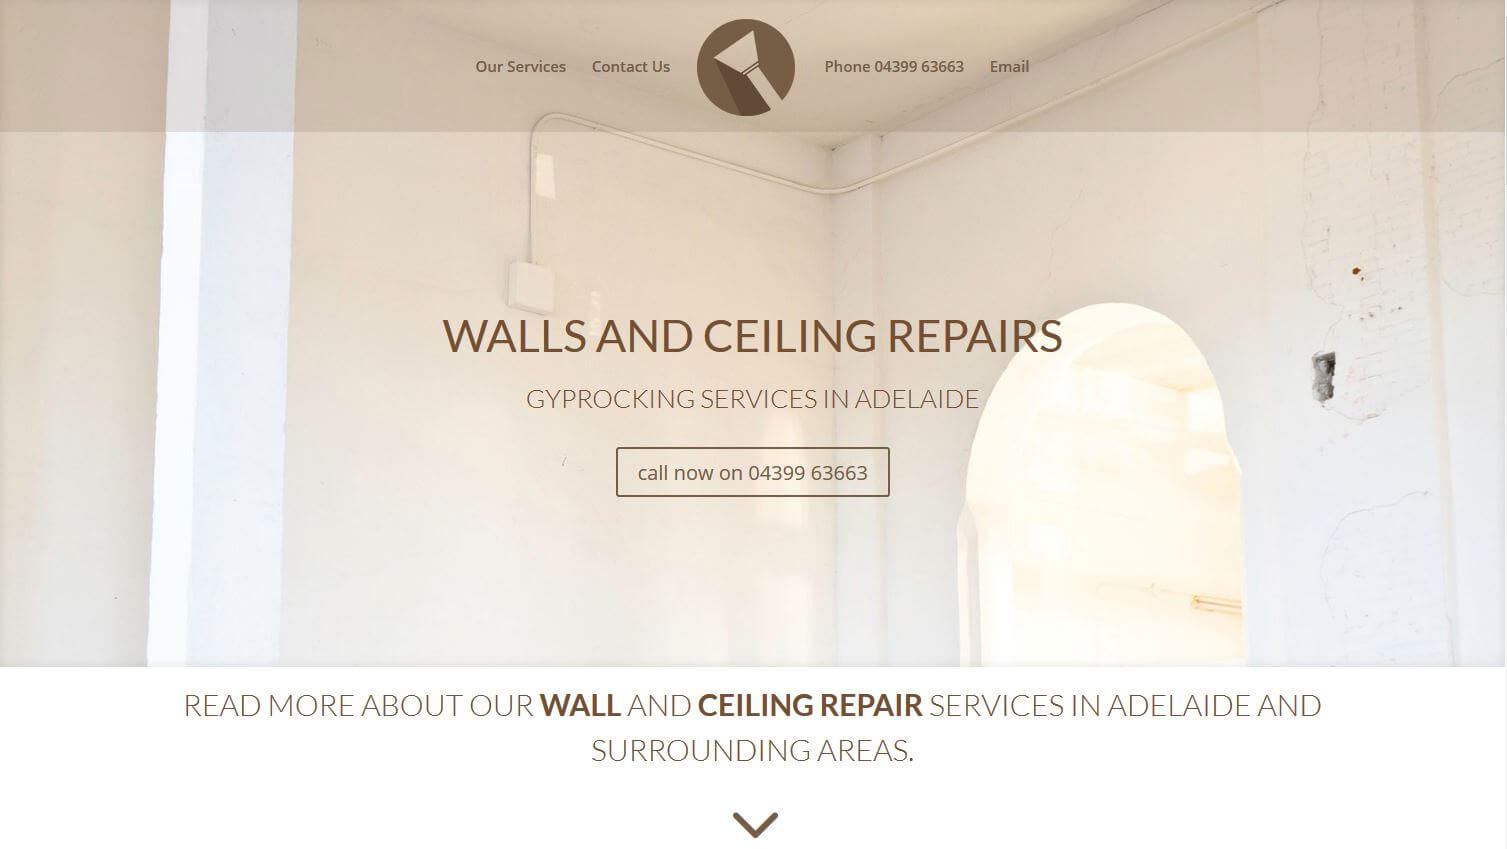 Website for Walls and Ceiling repairs Adelaide